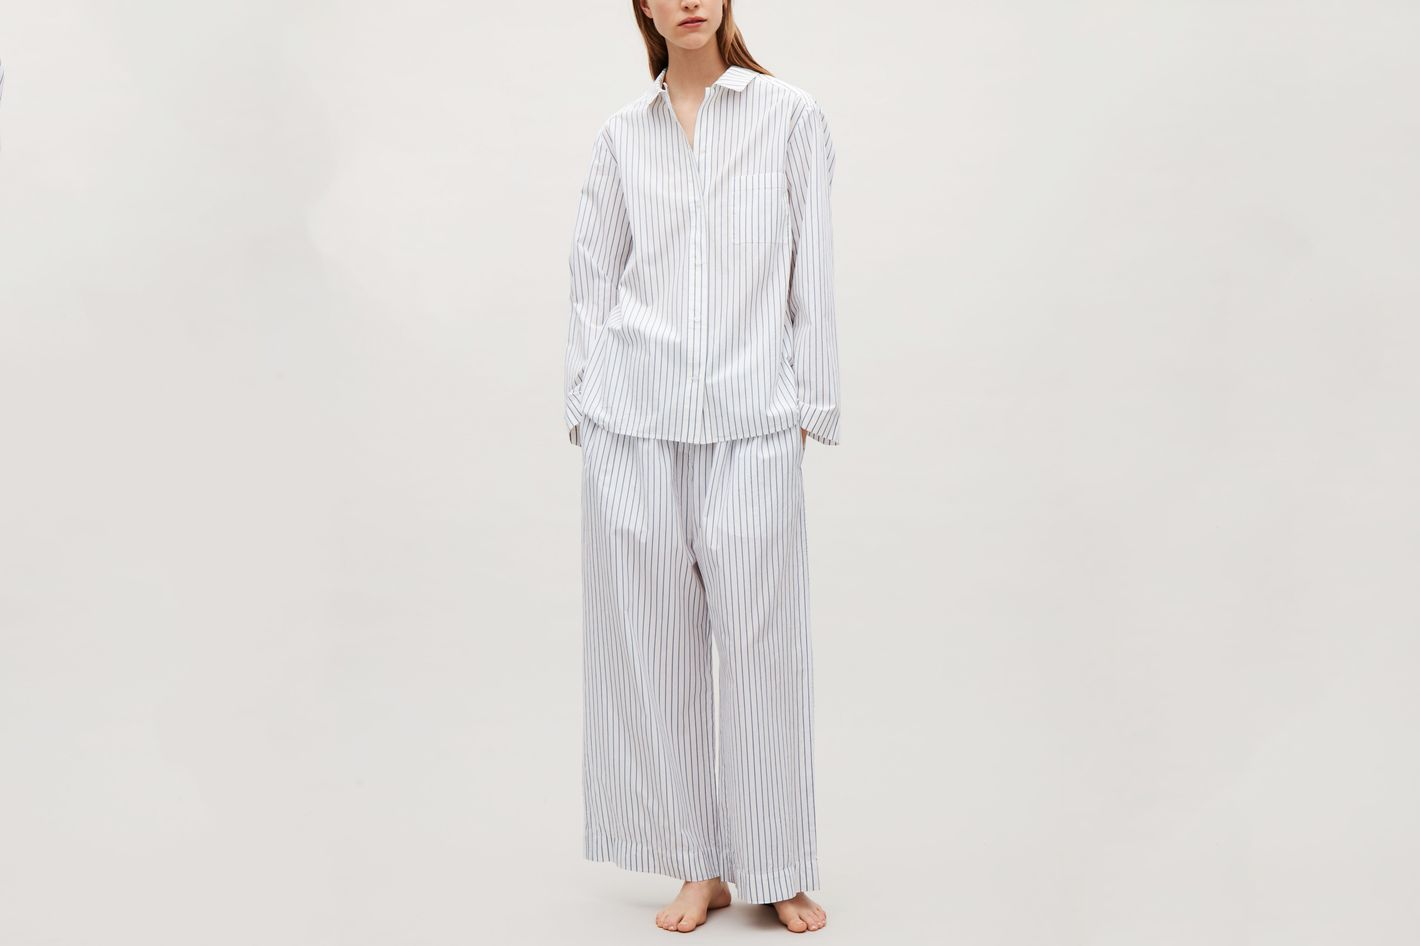 bd2eb34857 Striped Pajama Shirt